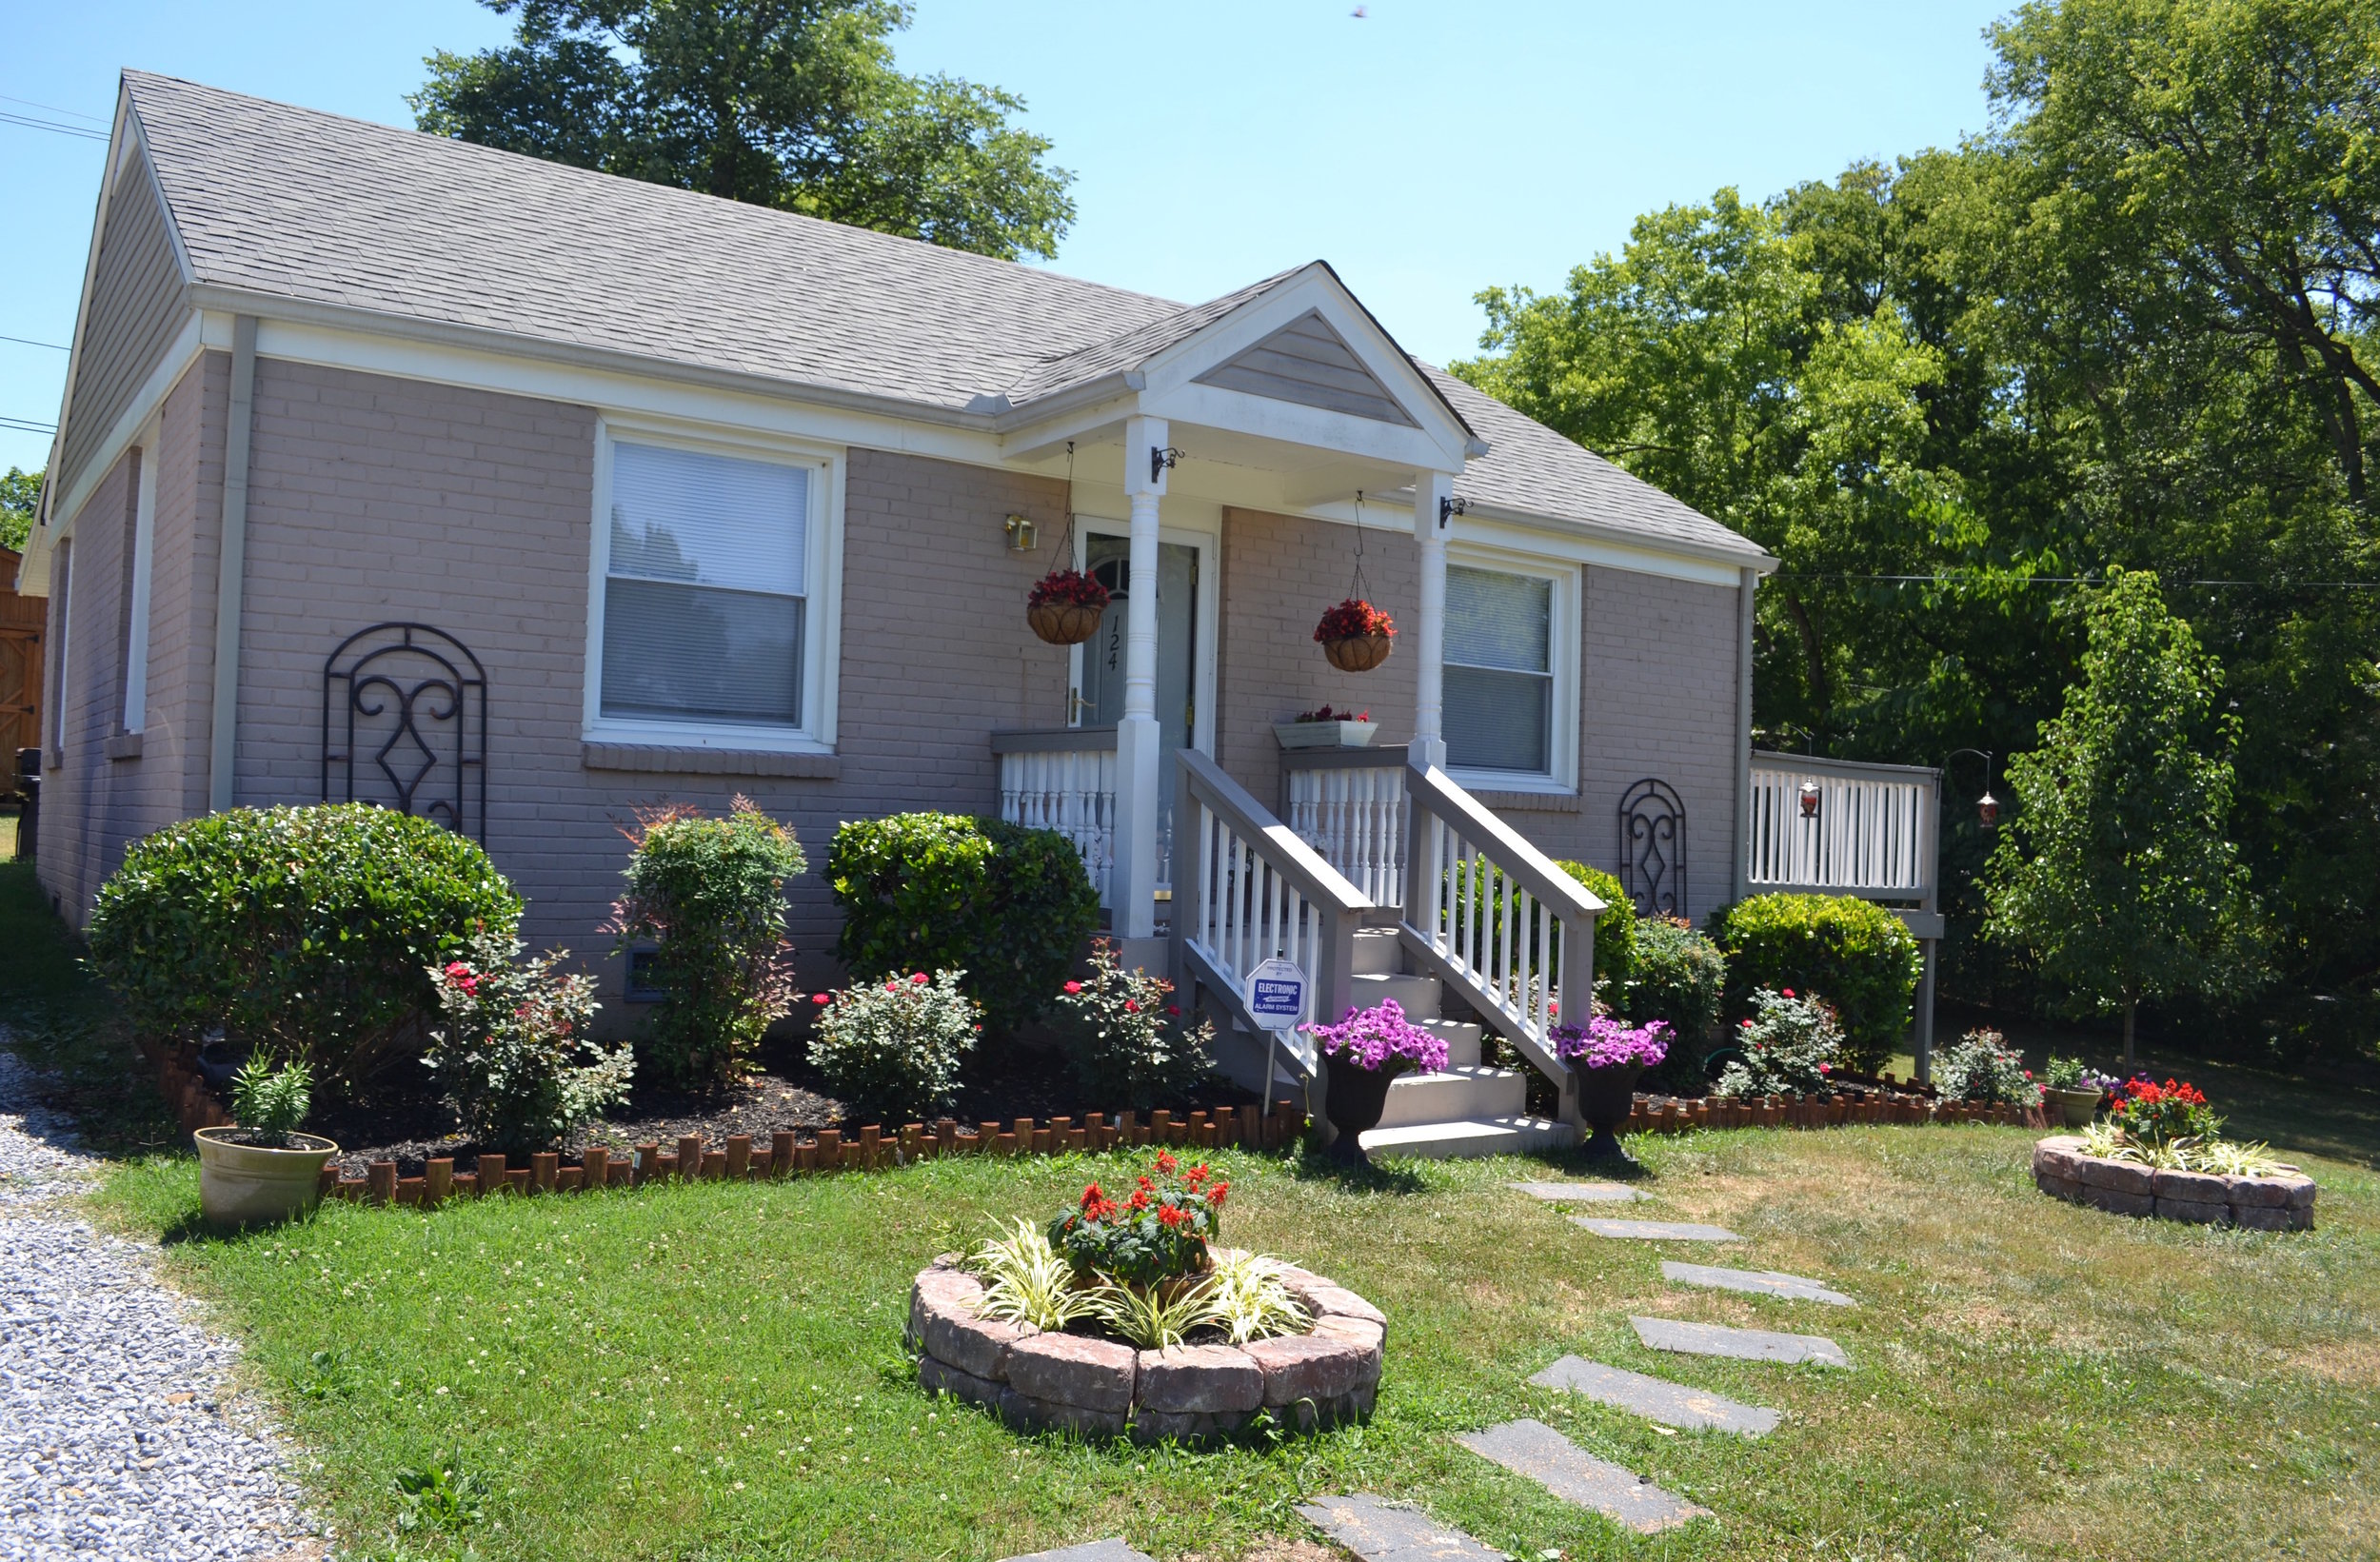 124 E Due West JUST RENTED   MADISON: Single Family Home : 2 Br, 1 Ba + 2 Decks